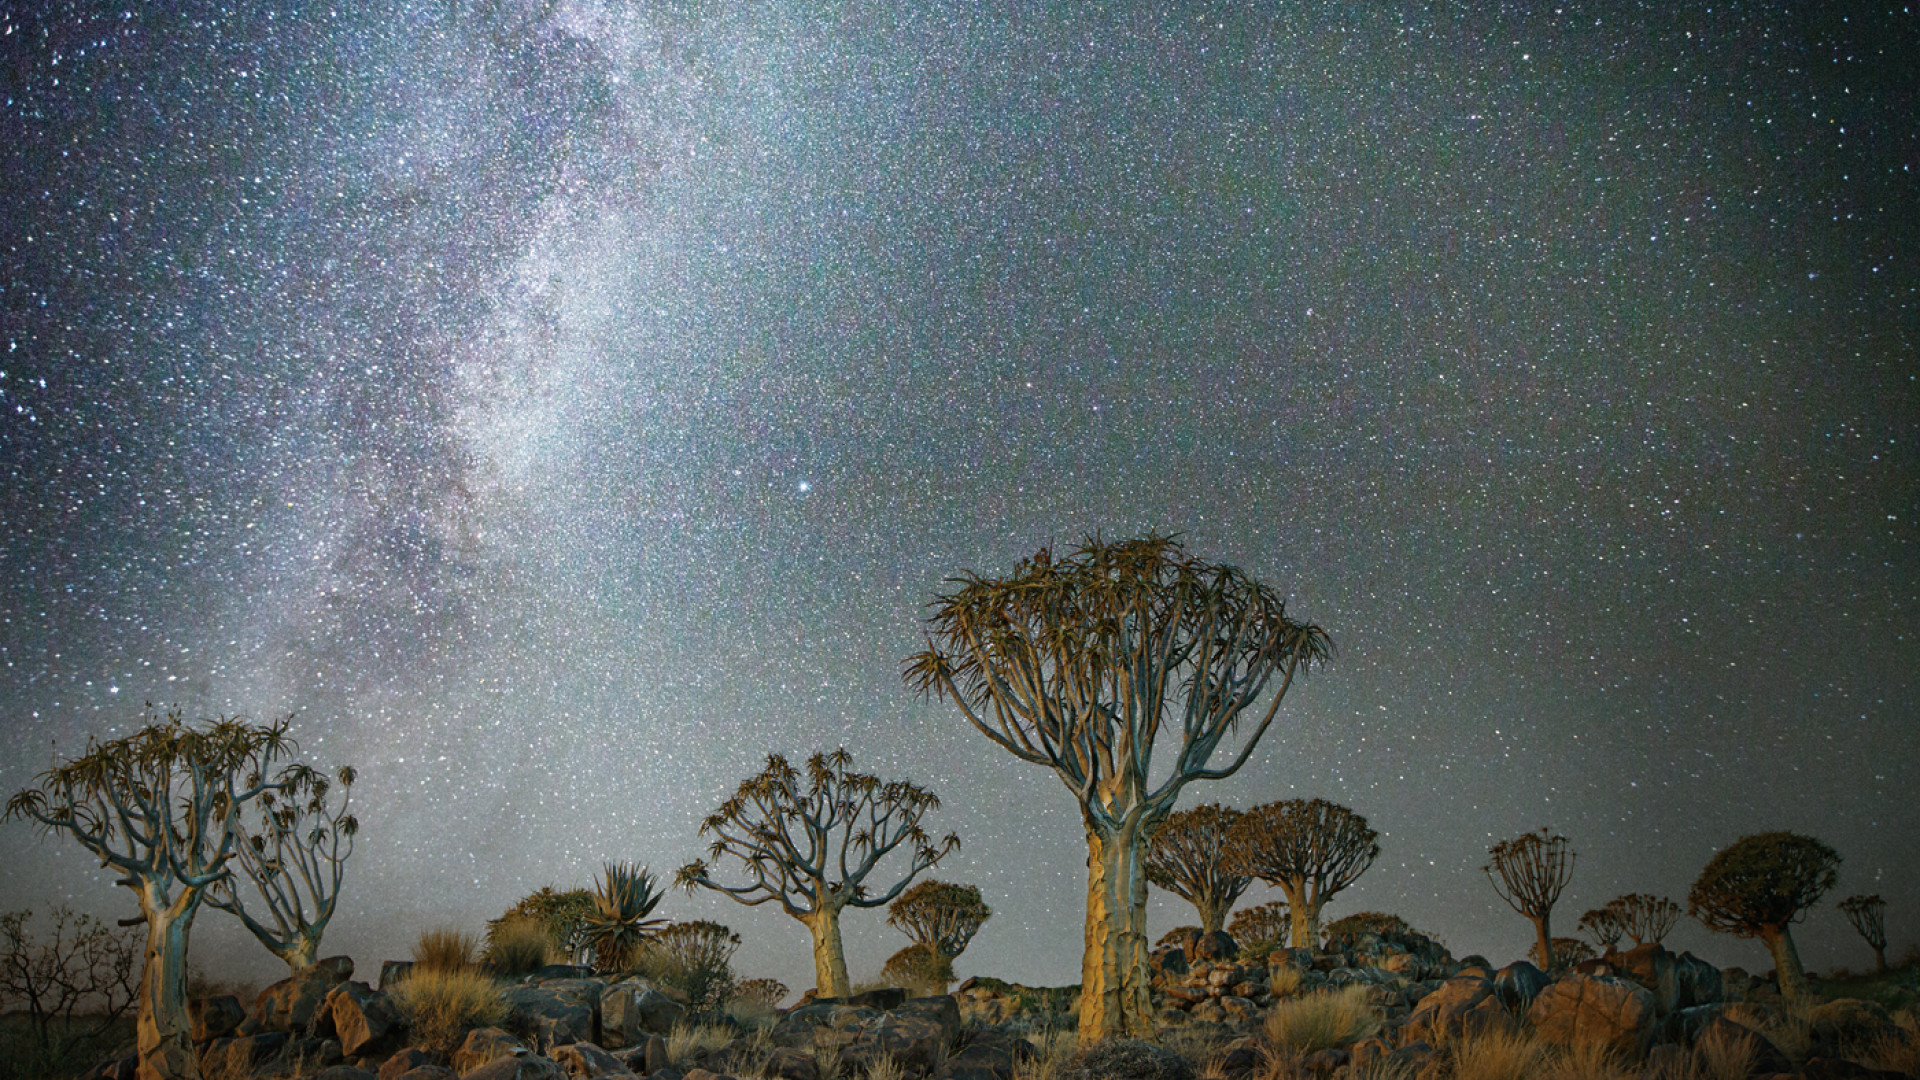 Baobab trees set against starry skies